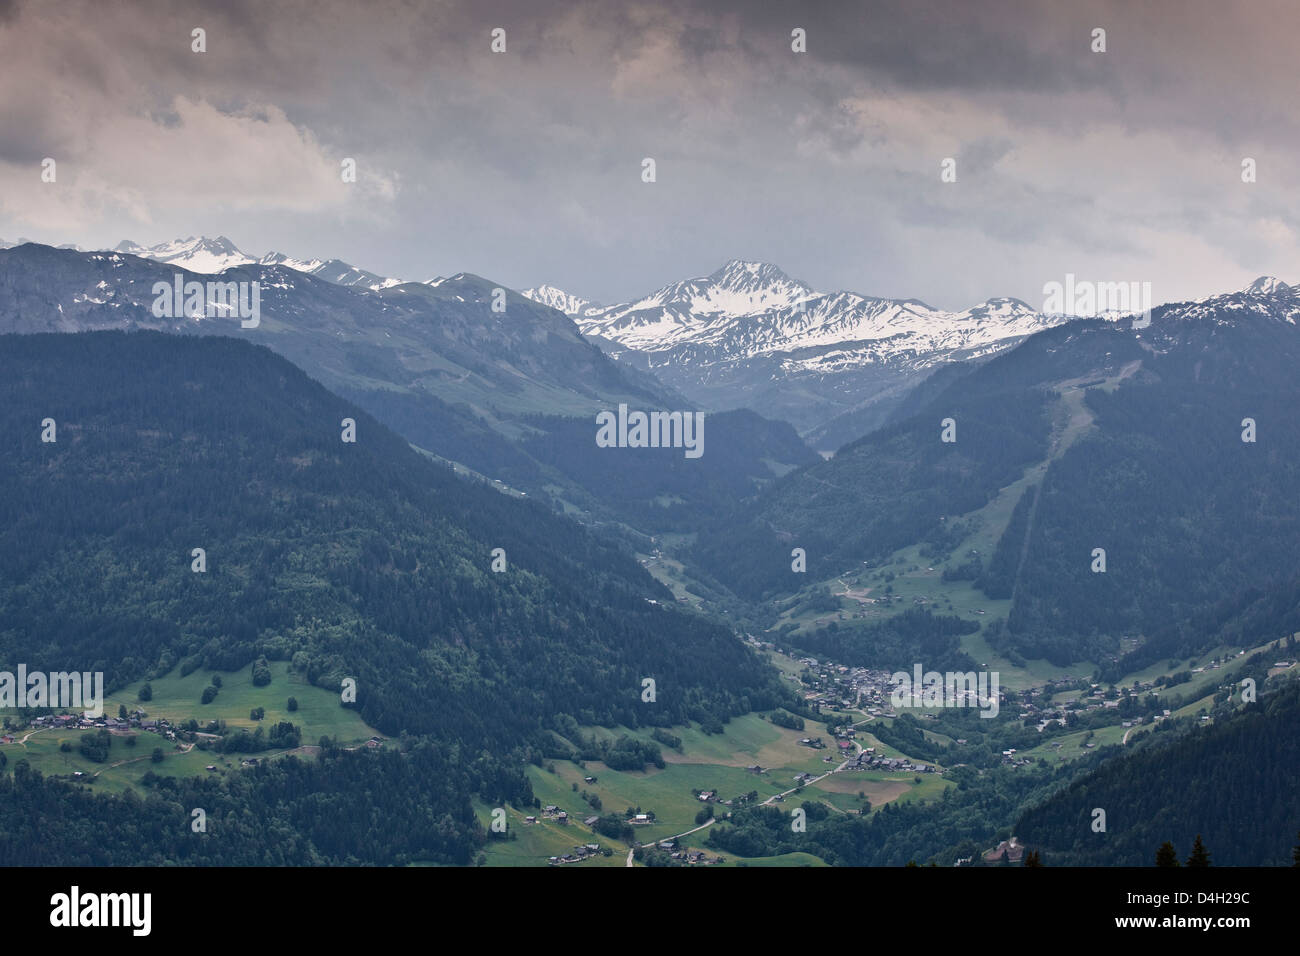 The snow capped mountains of the Haute-Savoie near to Les Saisies, Haute-Savoie, France - Stock Image